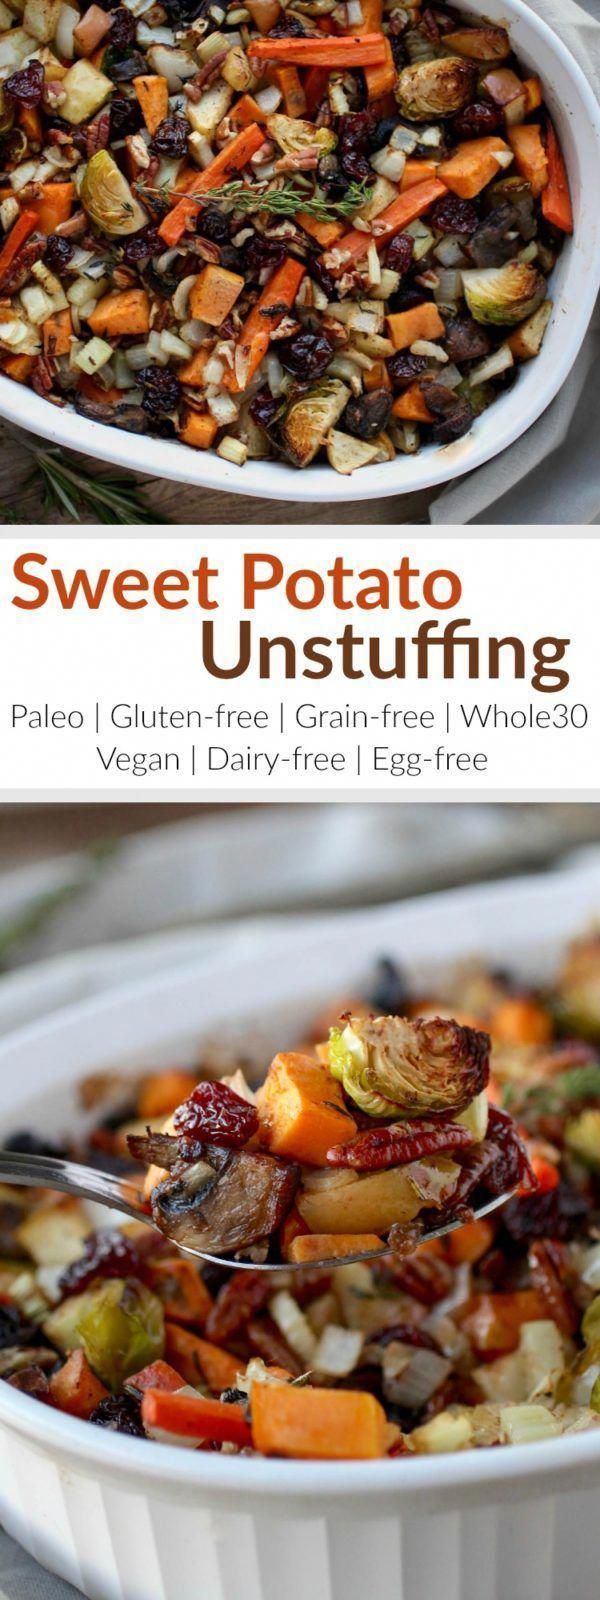 grain free side dishes in 2020 Healthy thanksgiving